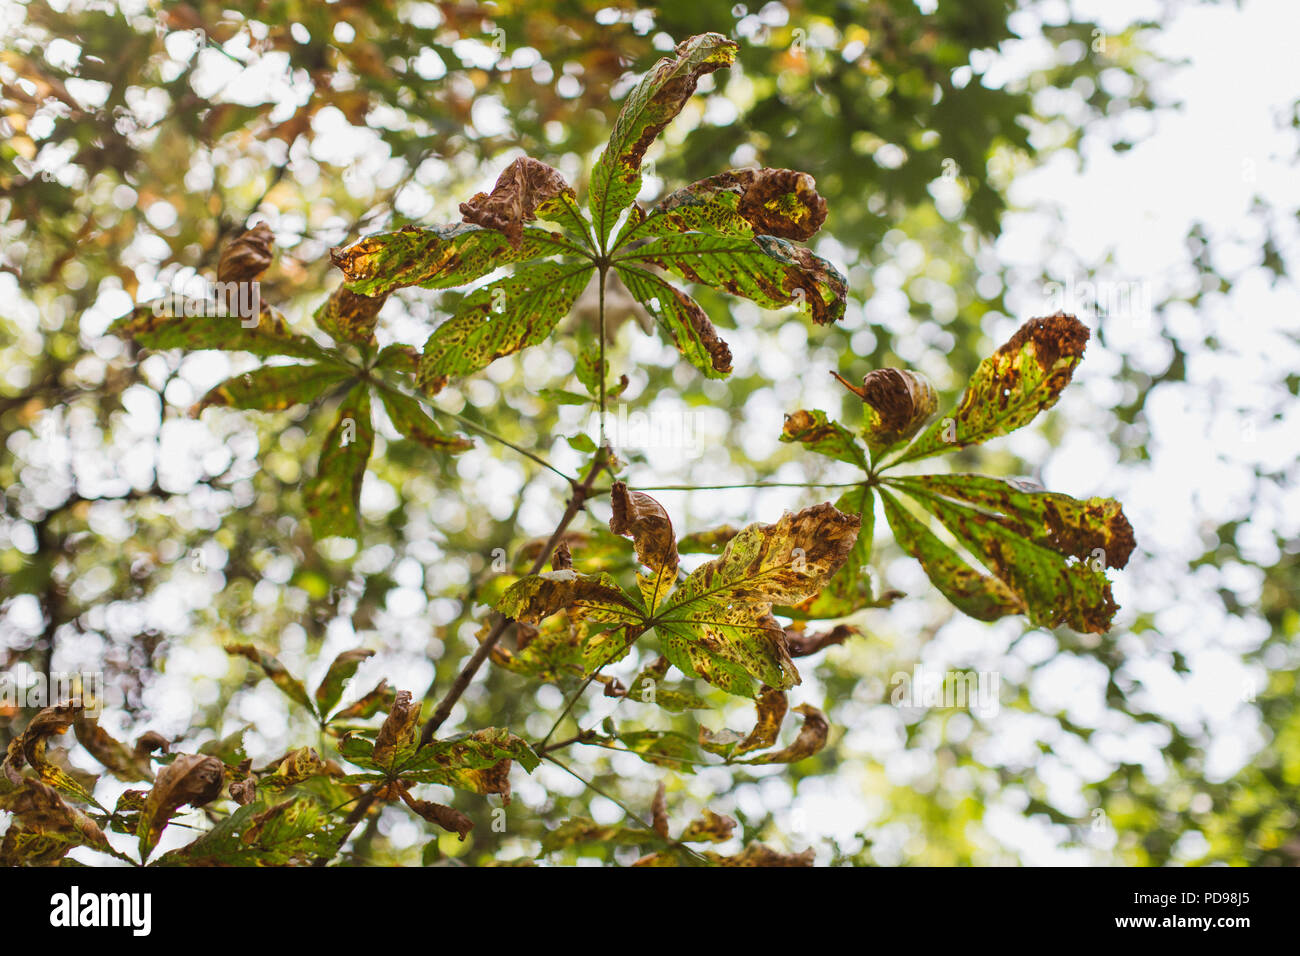 The conker tree (Horse Chestnut) could vanish from Britain because of disease and invasive moths. These leaves show signs of damage. - Stock Image